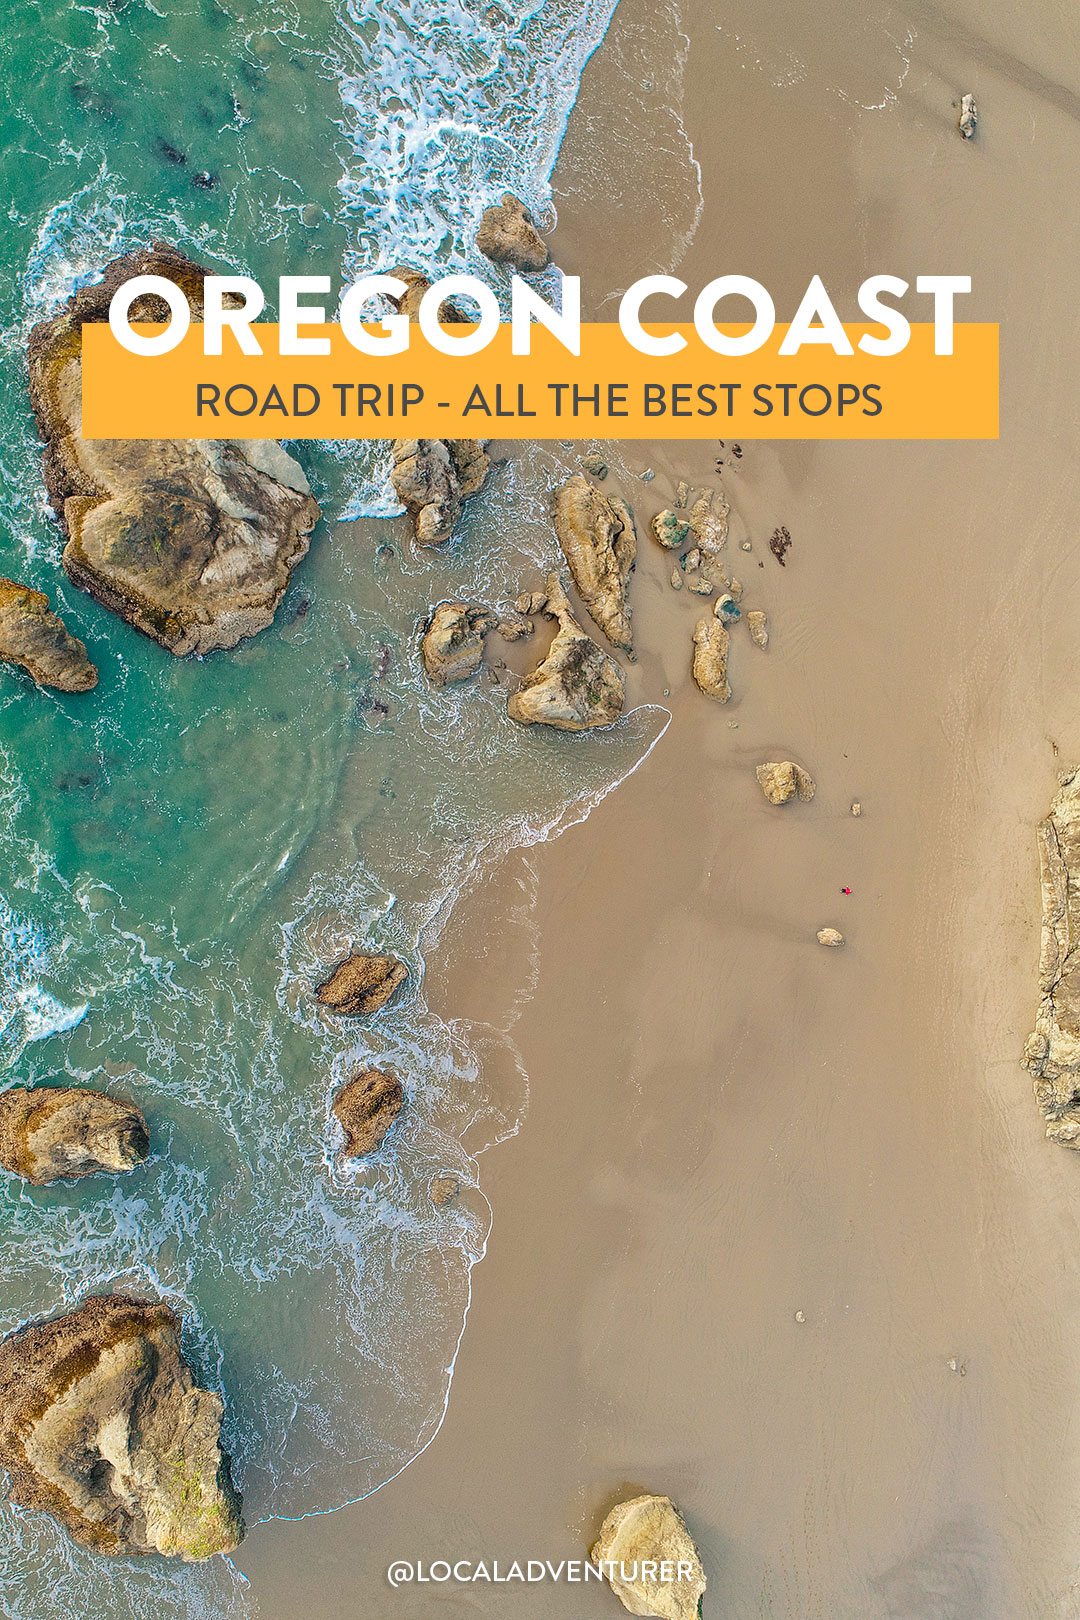 The Ultimate Oregon Coast Road Trip -Pictured here is Face Rock State Scenic Viewpoint